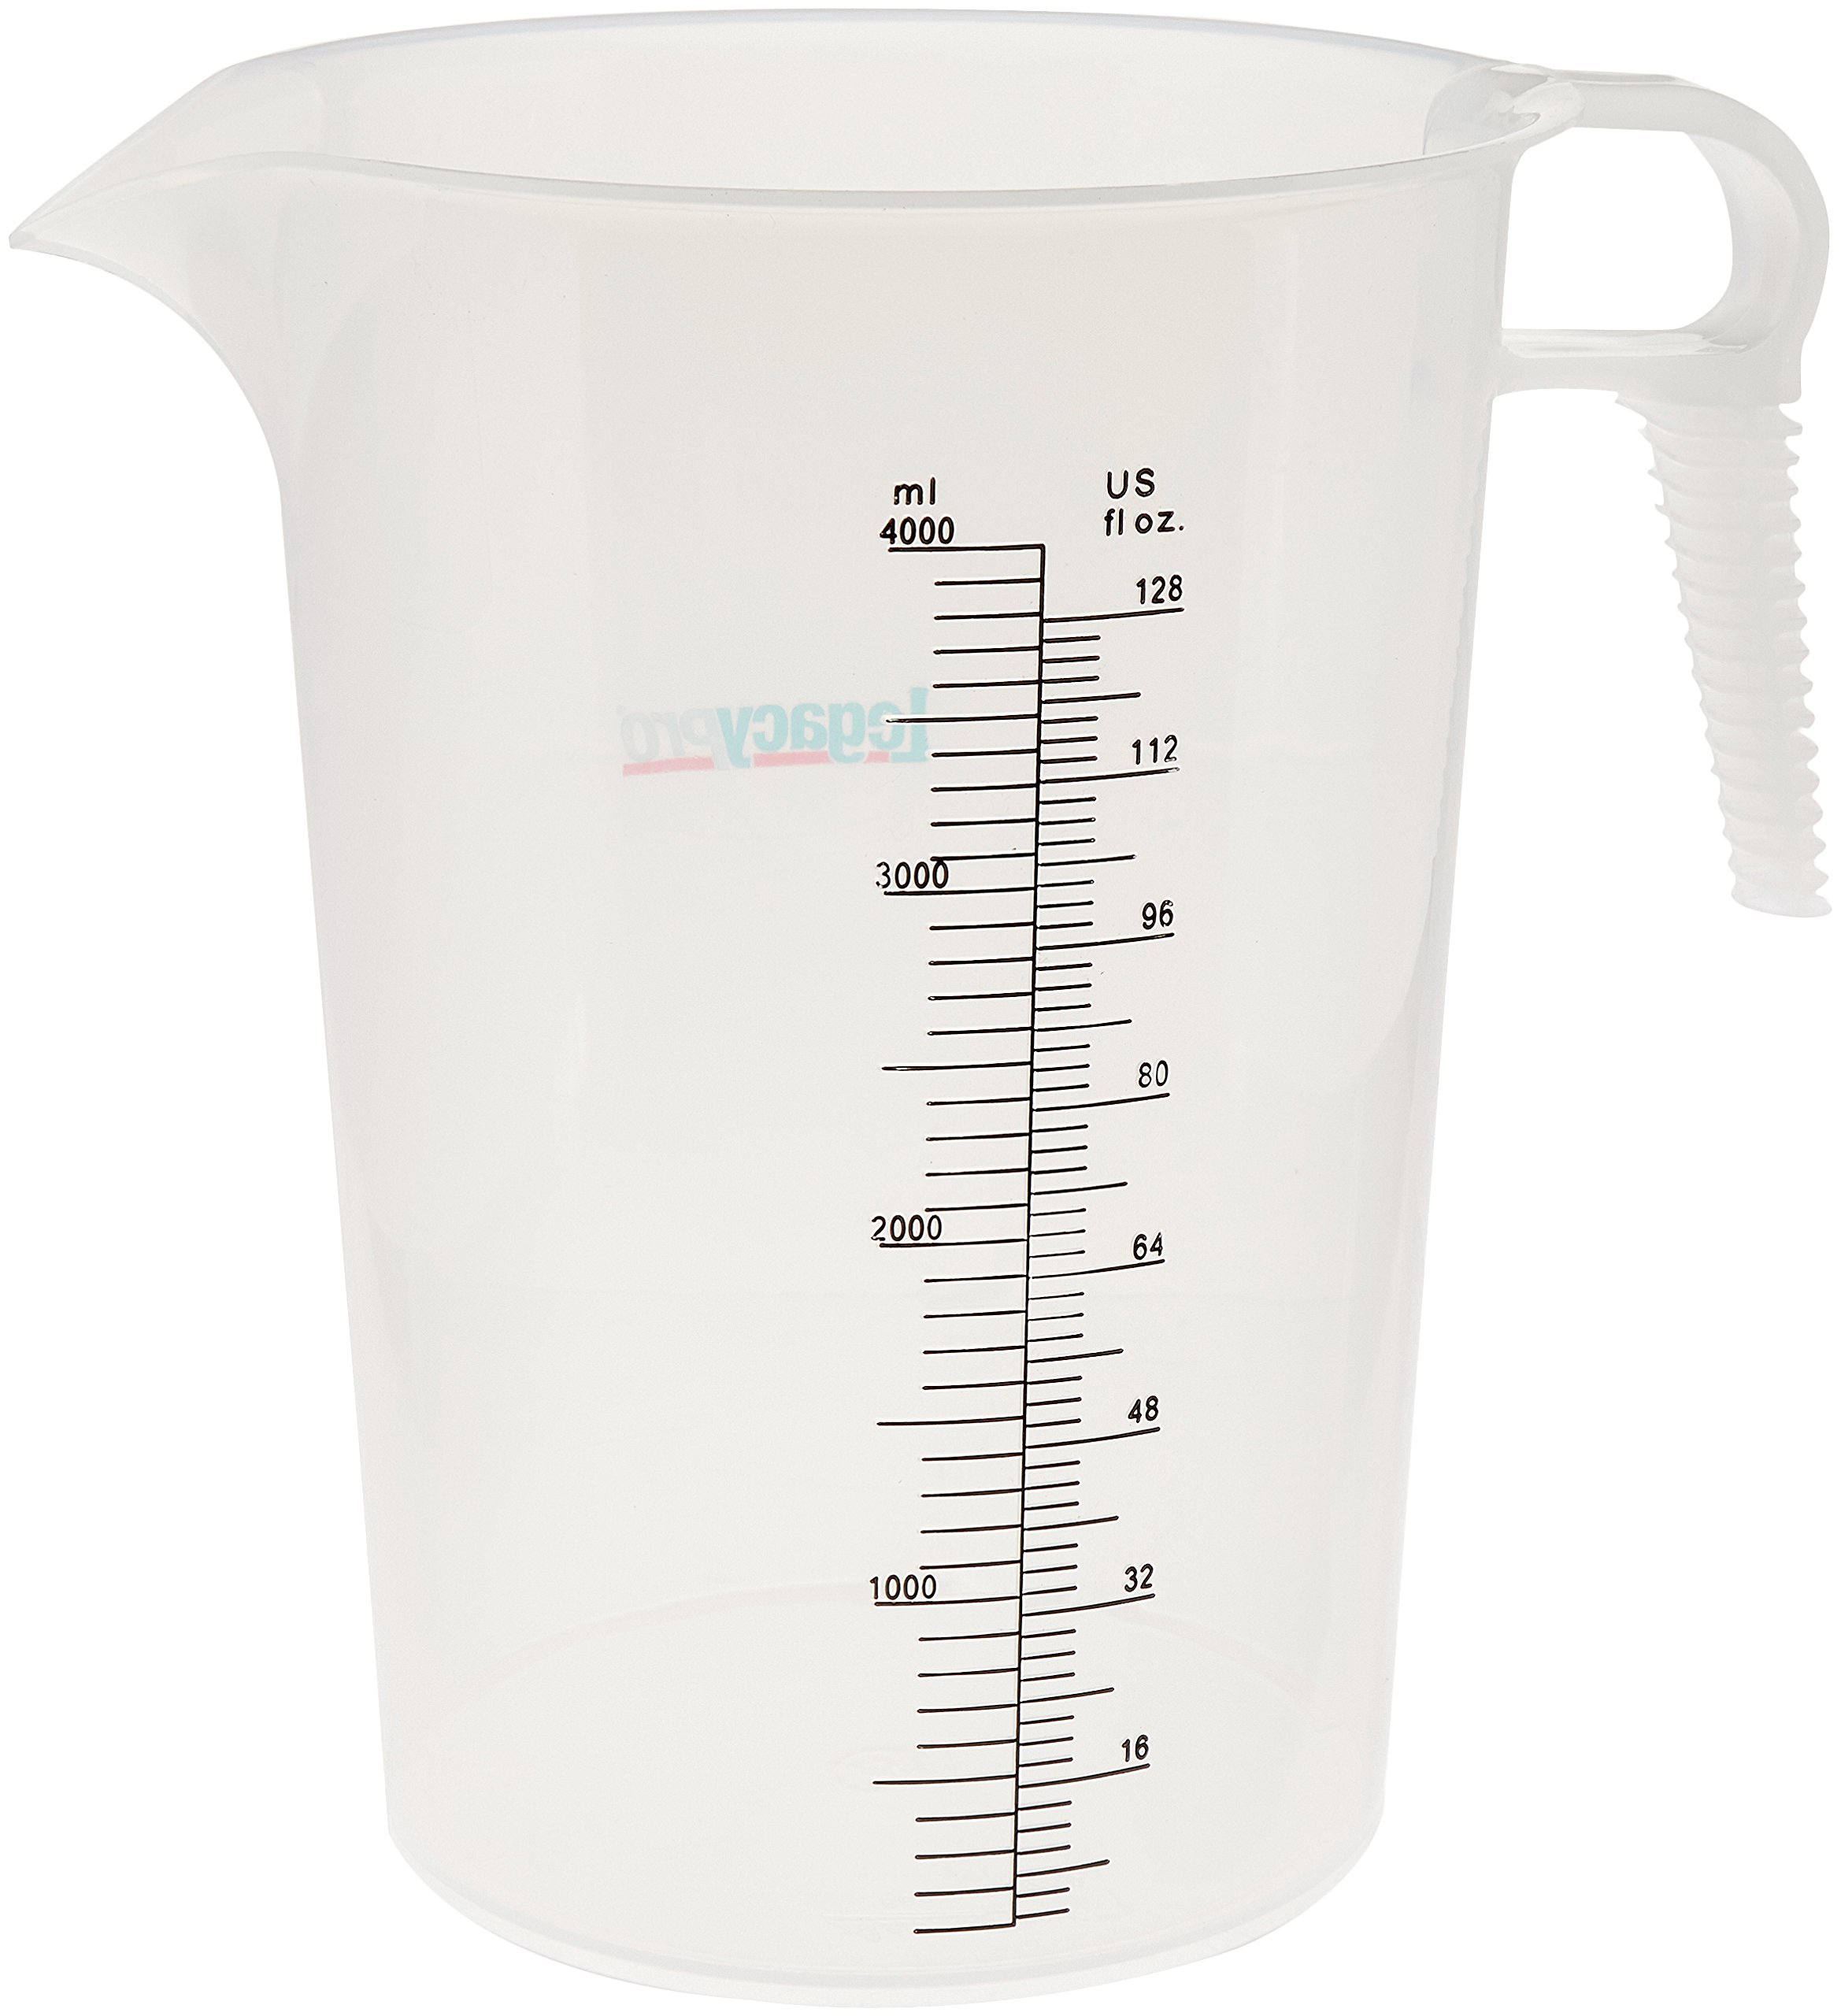 LegacyPro Translucent Graduated Pitcher for Darkroon Chemicals, Automotive and Pool Supplies, 128oz